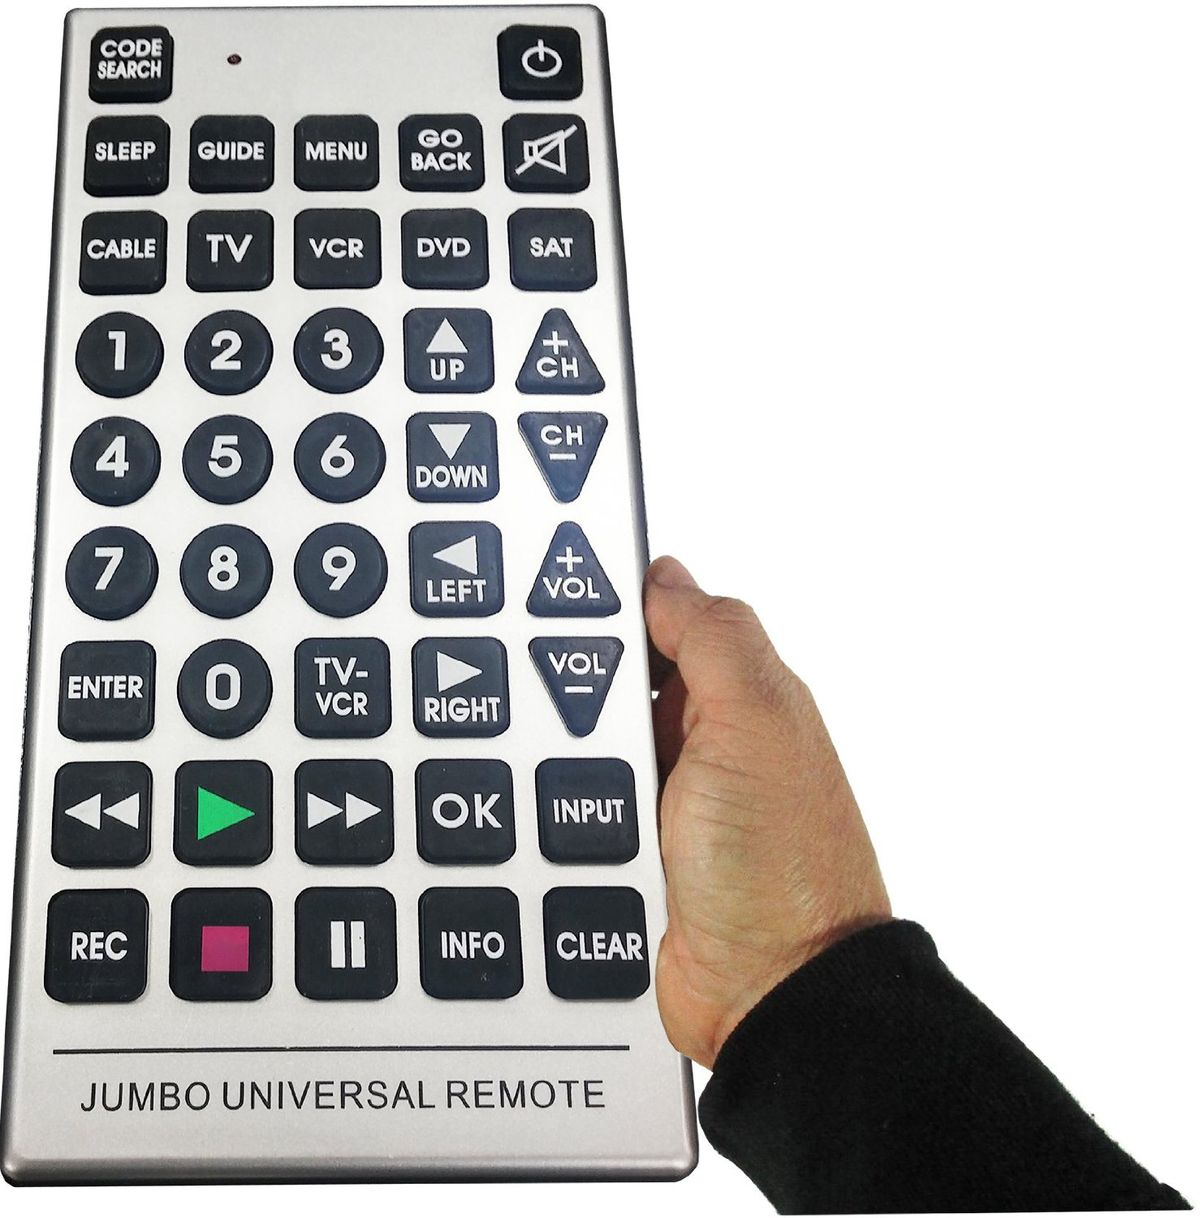 Against all odds, Dish has built the ugliest TV remote of all time